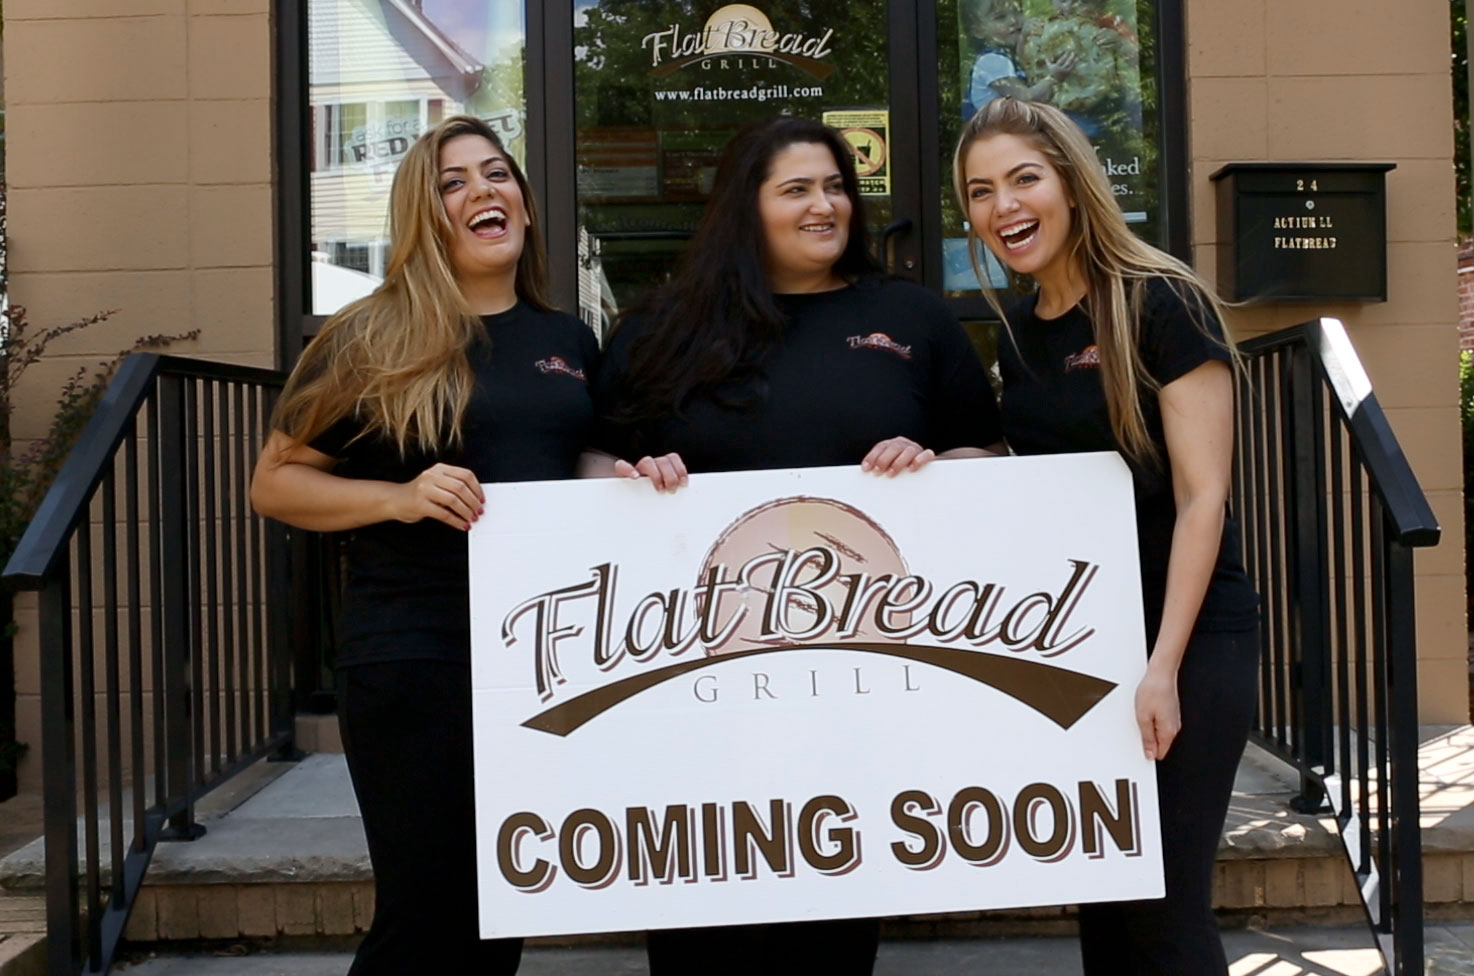 The original Flatbread Grill store in Montclair with a Coming Soon sign out front.